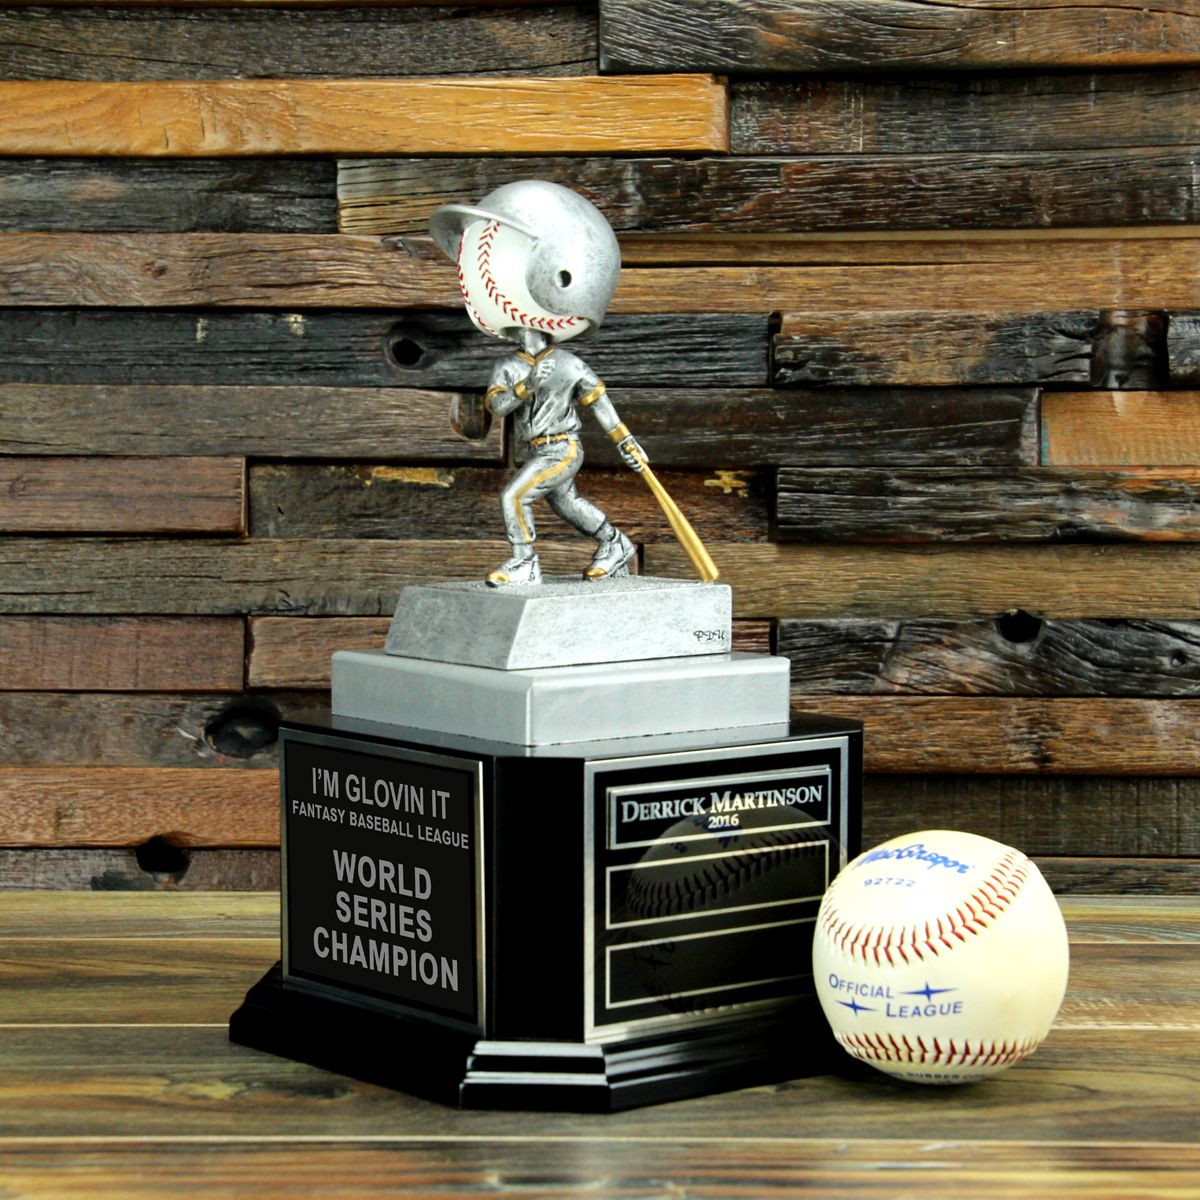 Playing In A Baseball League Or Participating In Fantasy Baseball Here S An Awesome Trophy To Award The Fantasy Baseball Fantasy Football Gifts Baseball Award